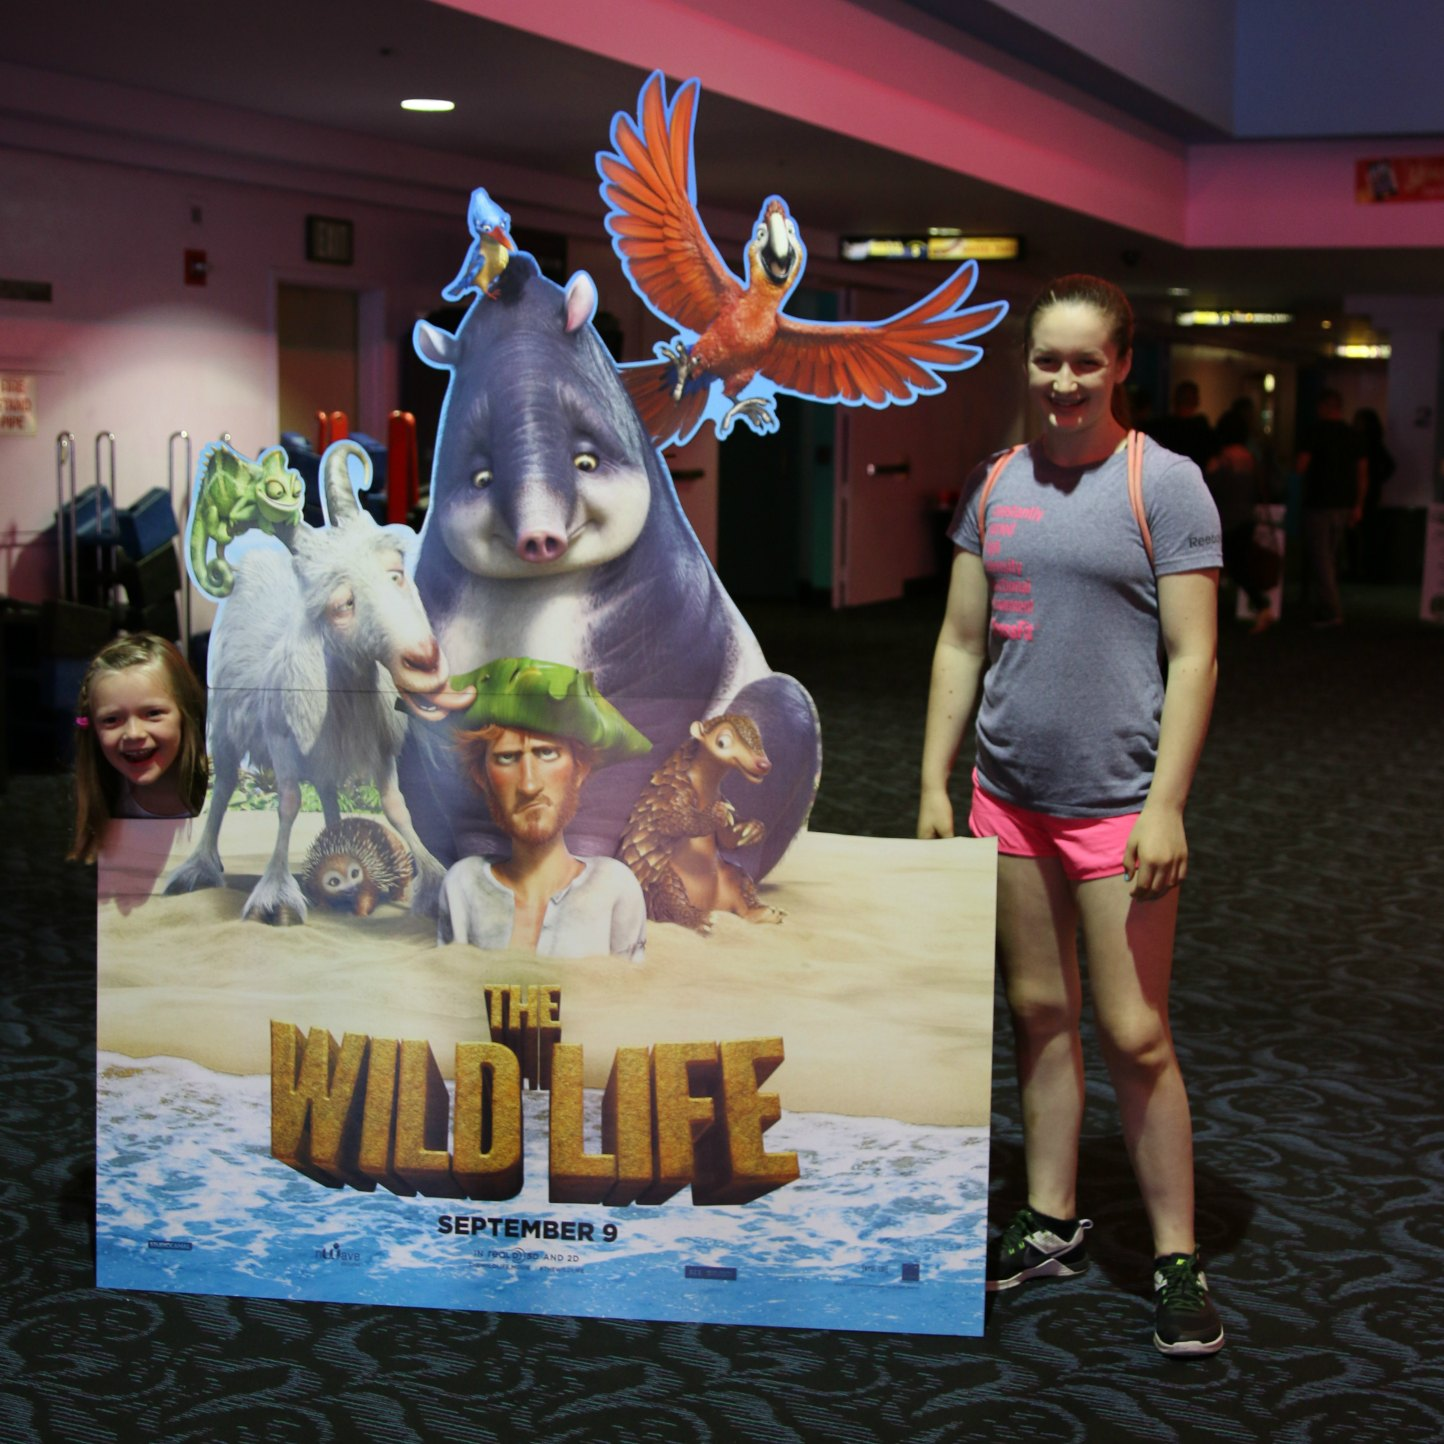 The Wild Life Movie Review